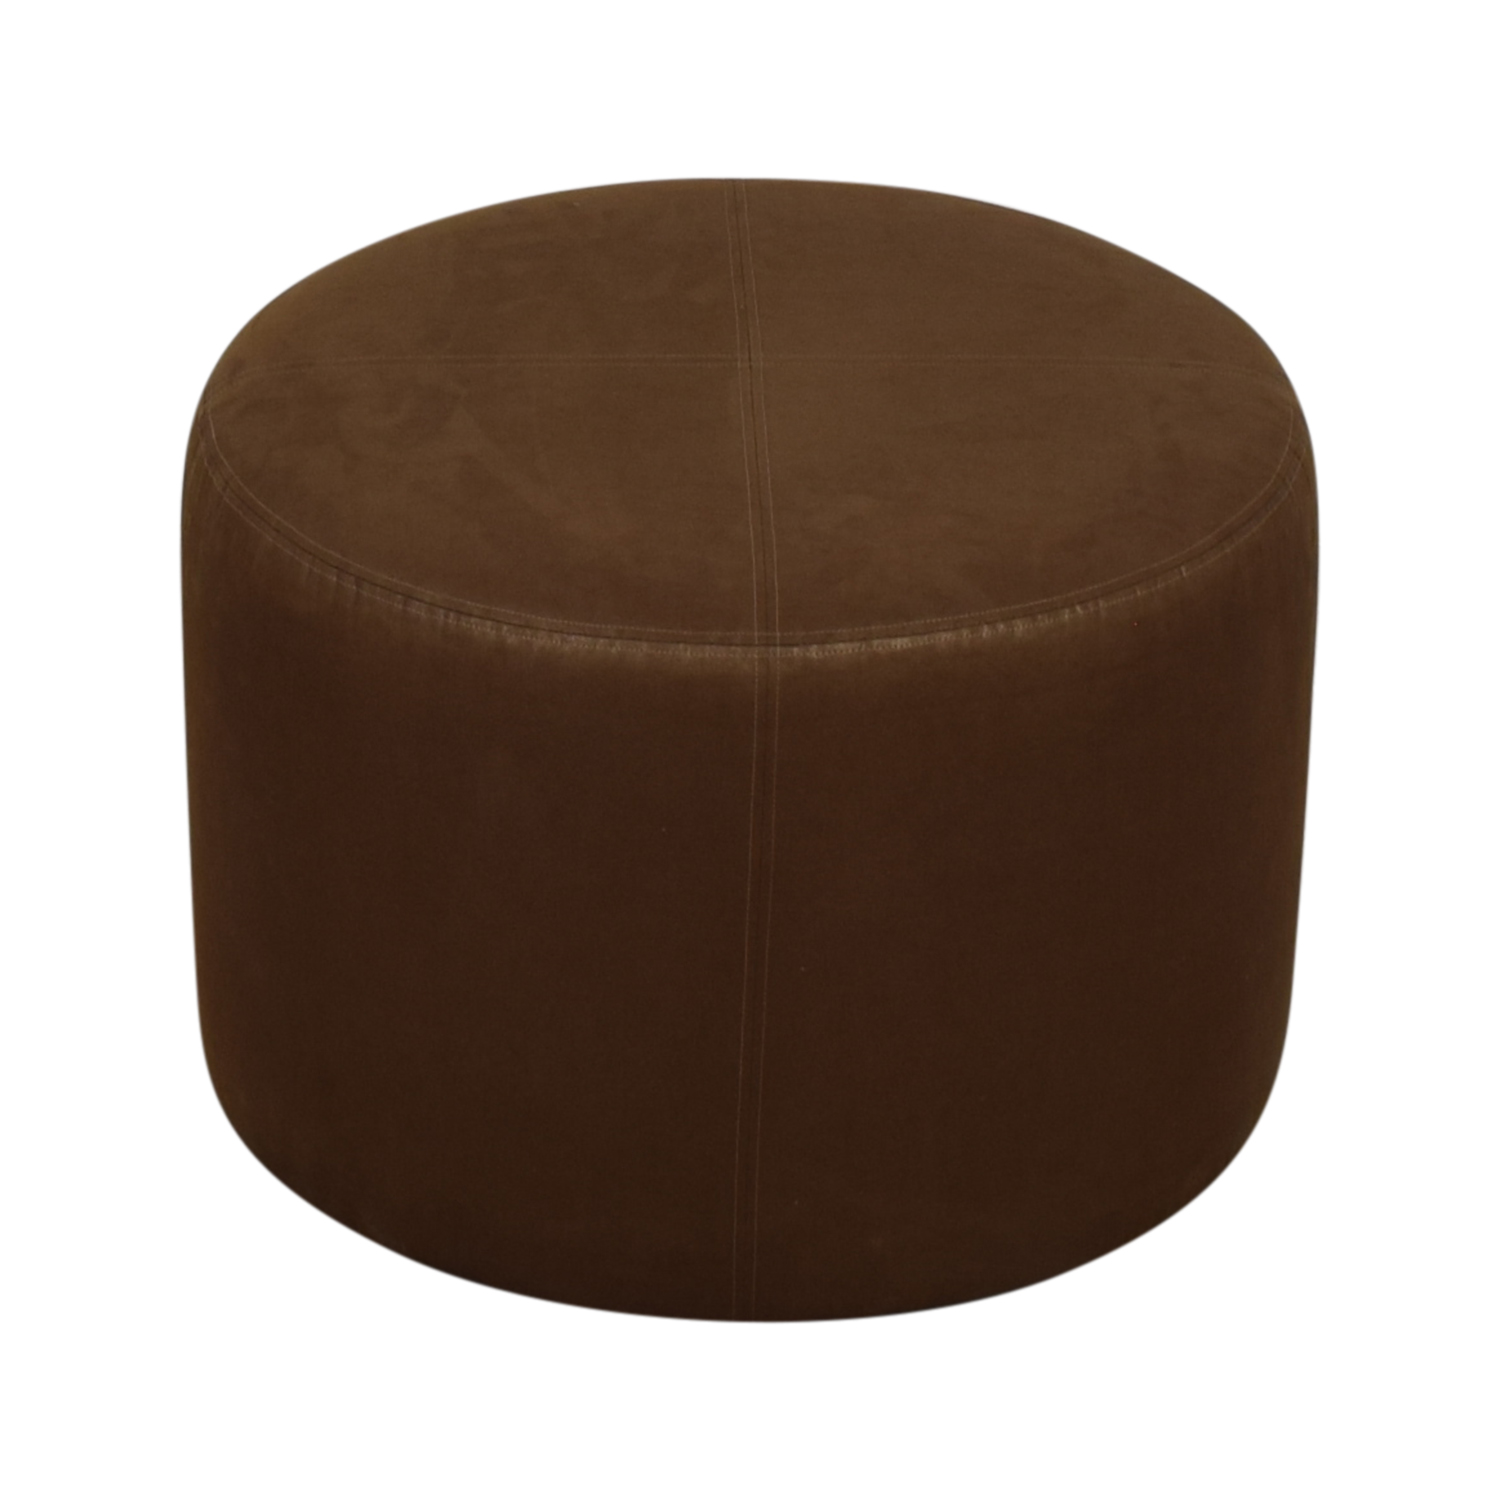 Round Rustic Leather Ottoman sale